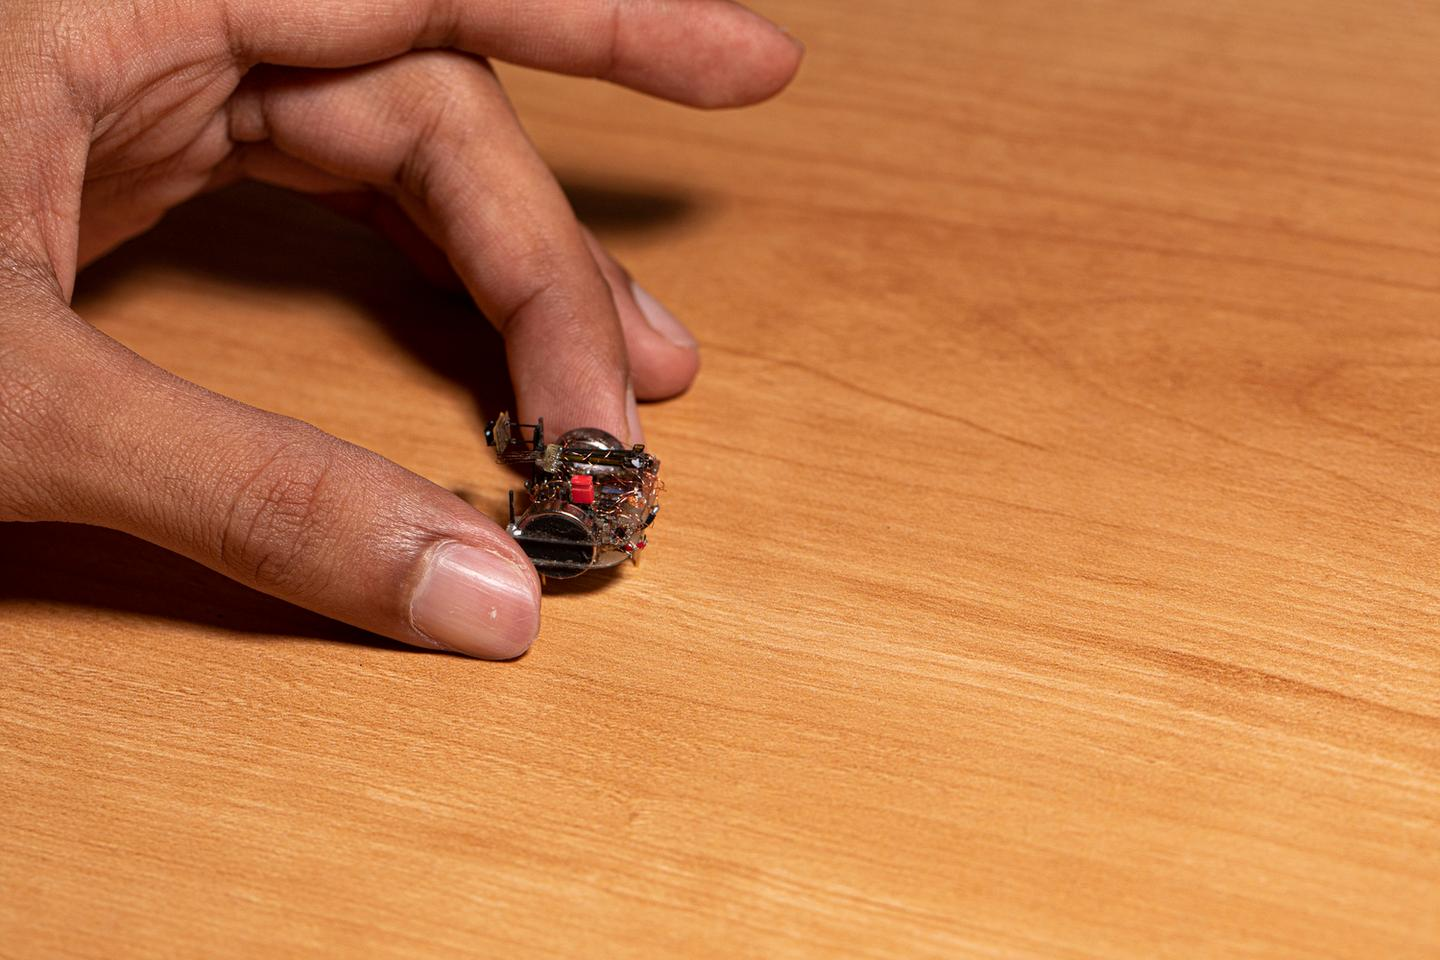 The tiny camera can give sight to an insect-sized robot